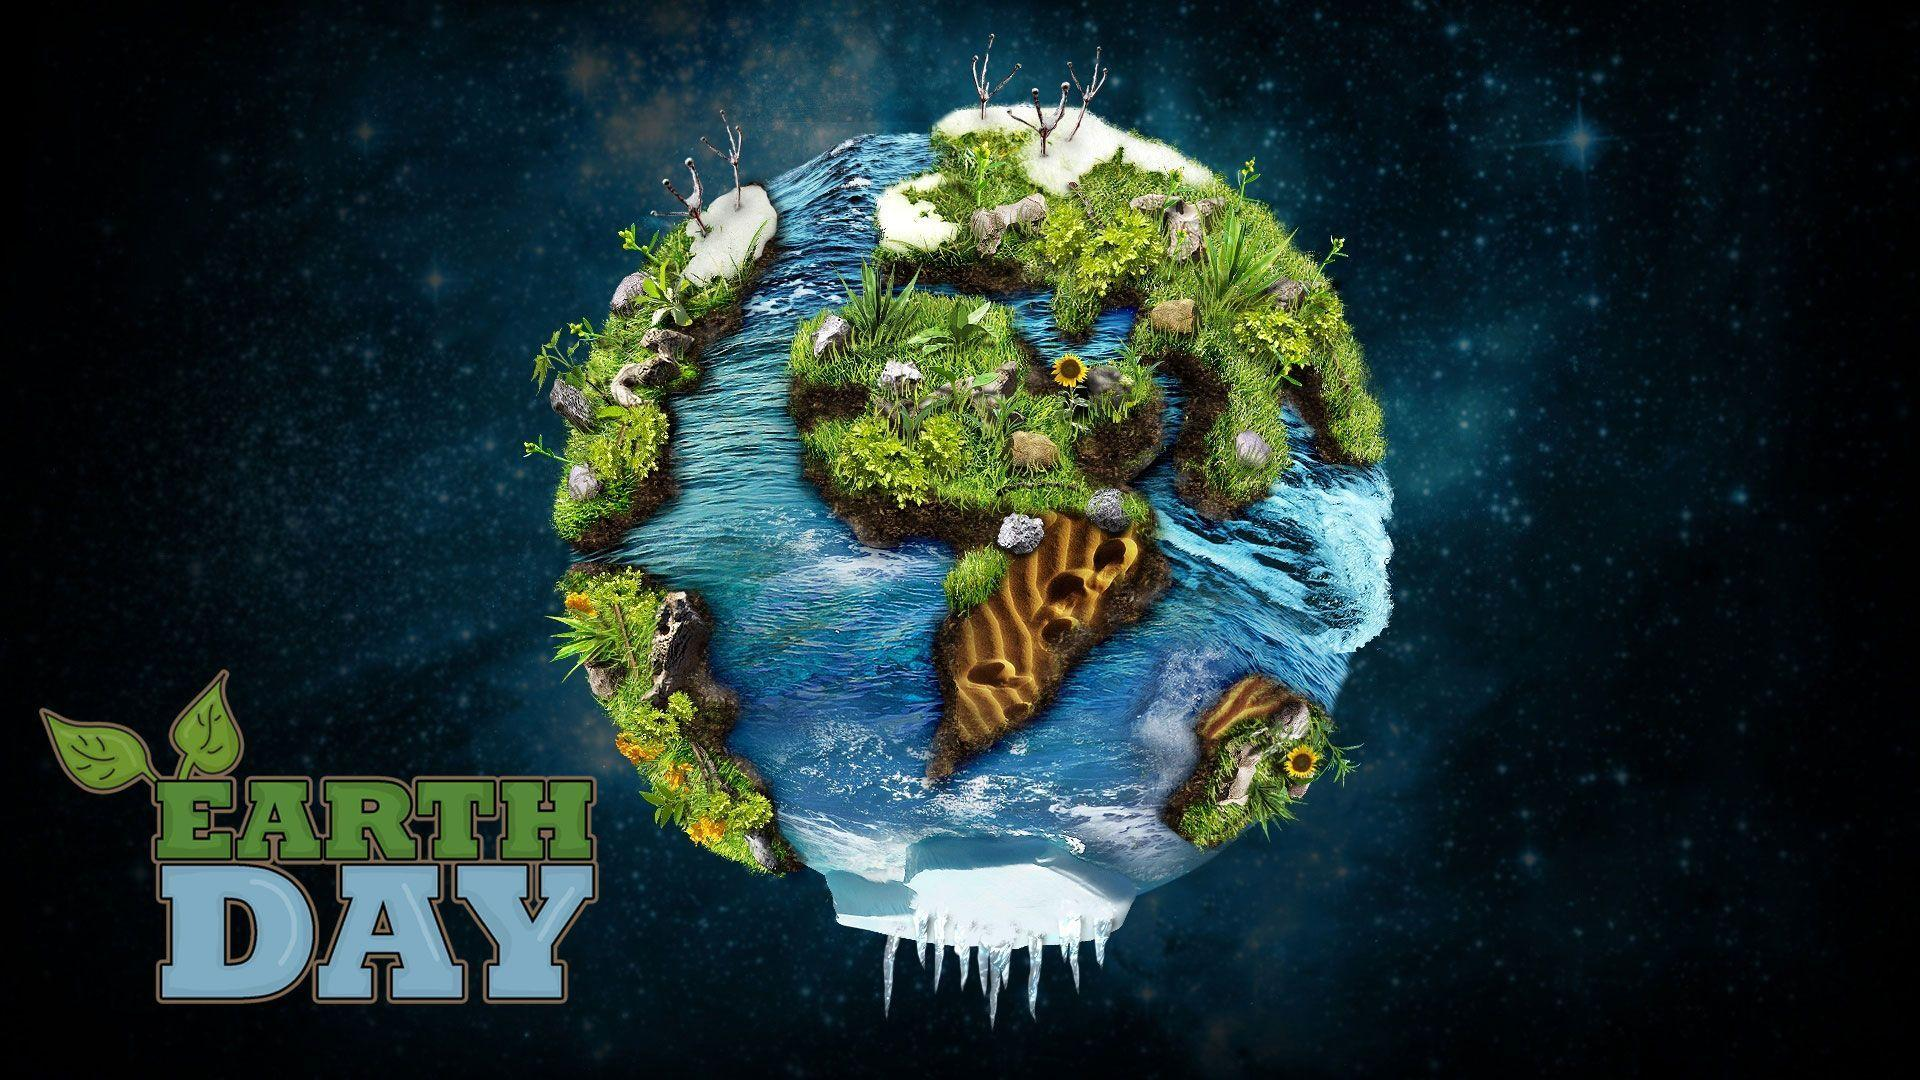 Happy Earth Day Green PC Hd Image Wallpapers